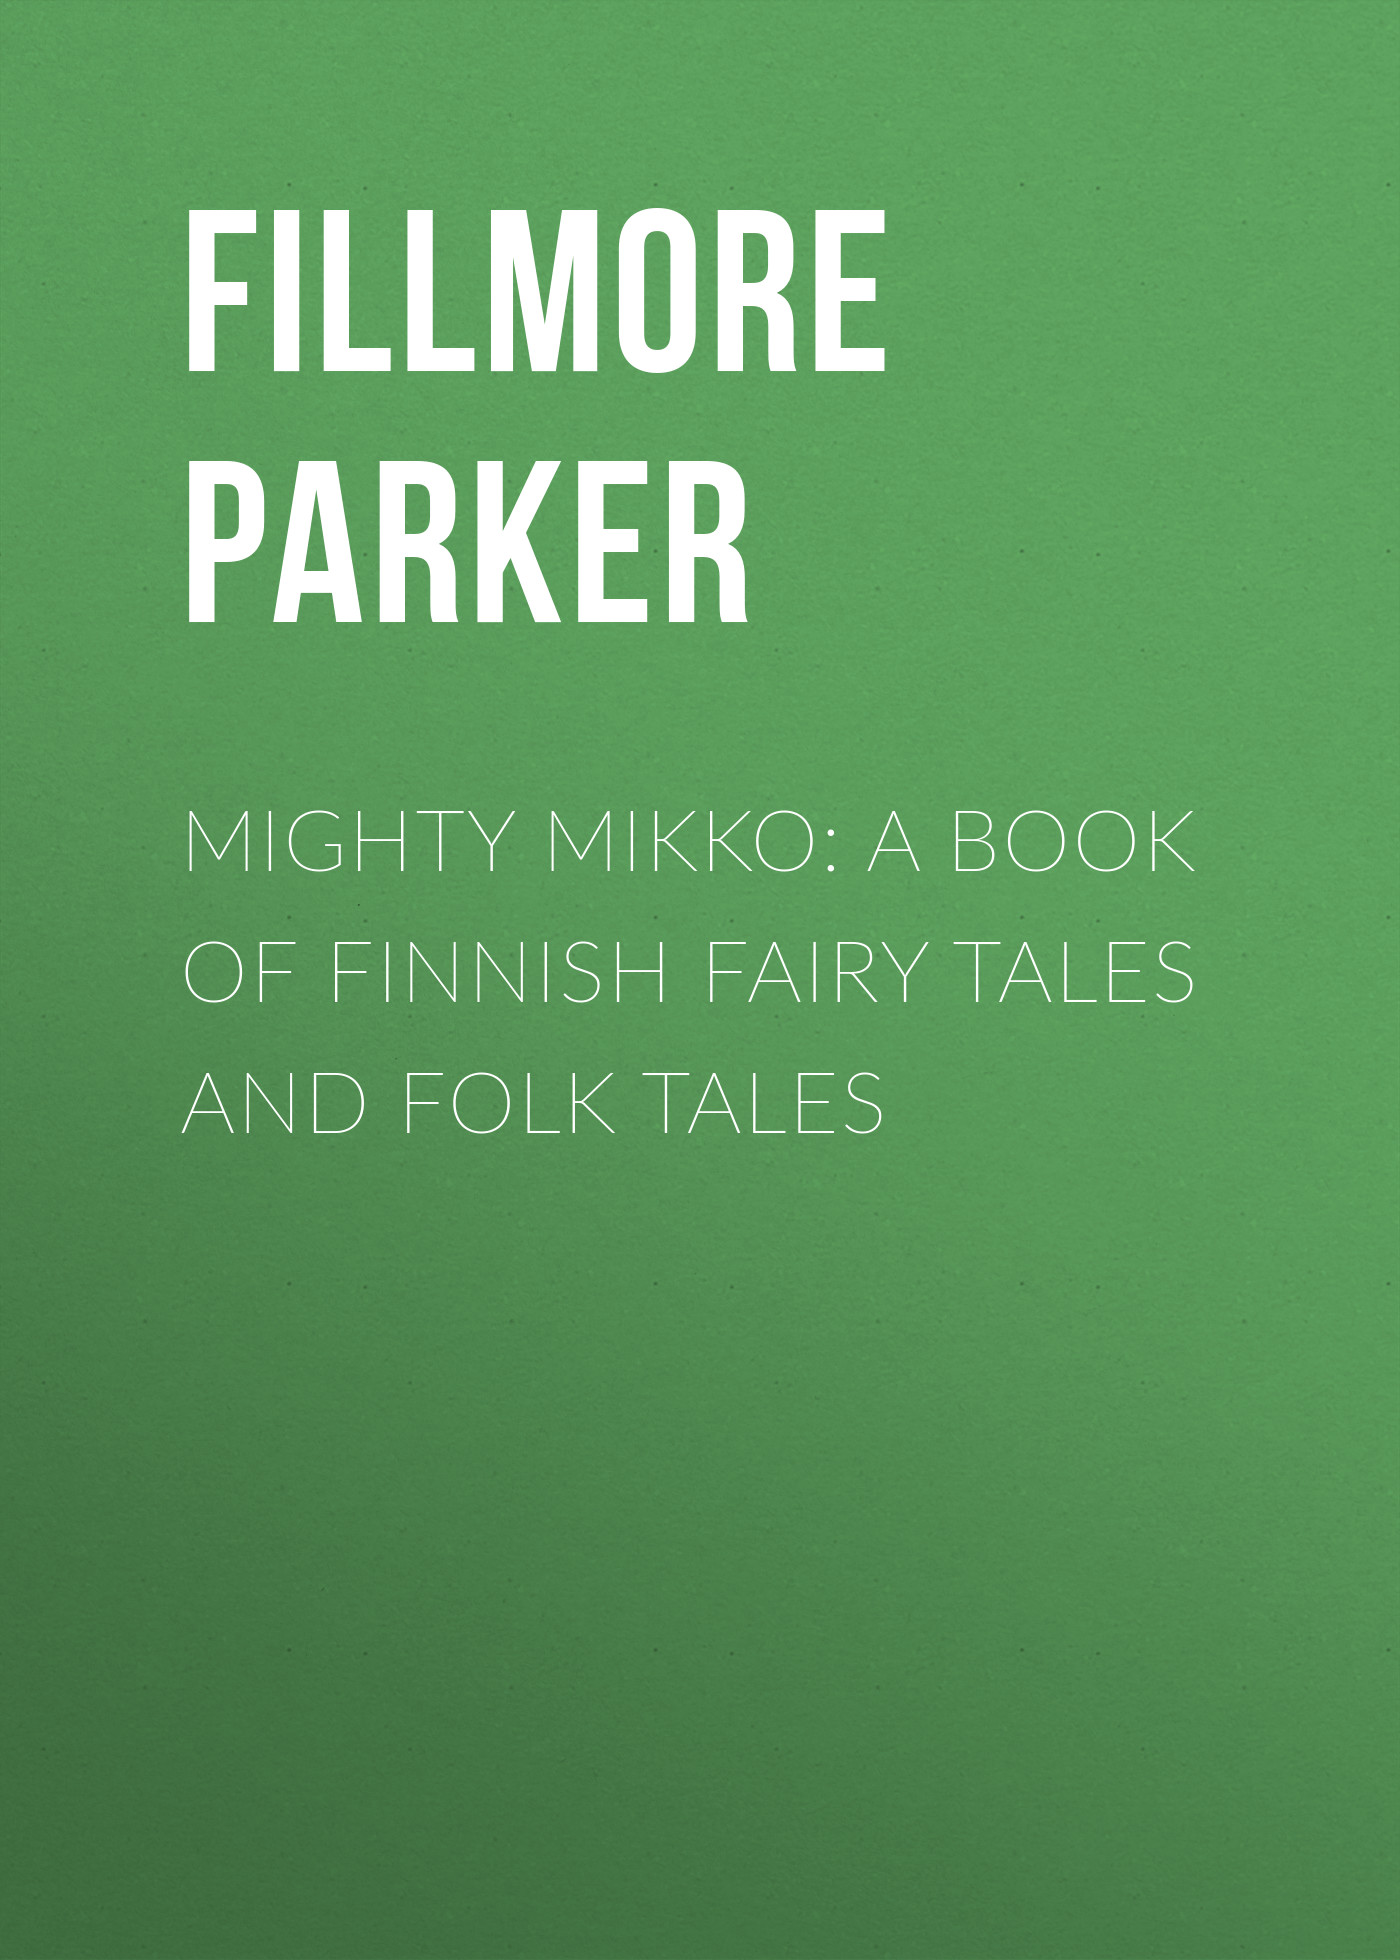 цена на Fillmore Parker Mighty Mikko: A Book of Finnish Fairy Tales and Folk Tales